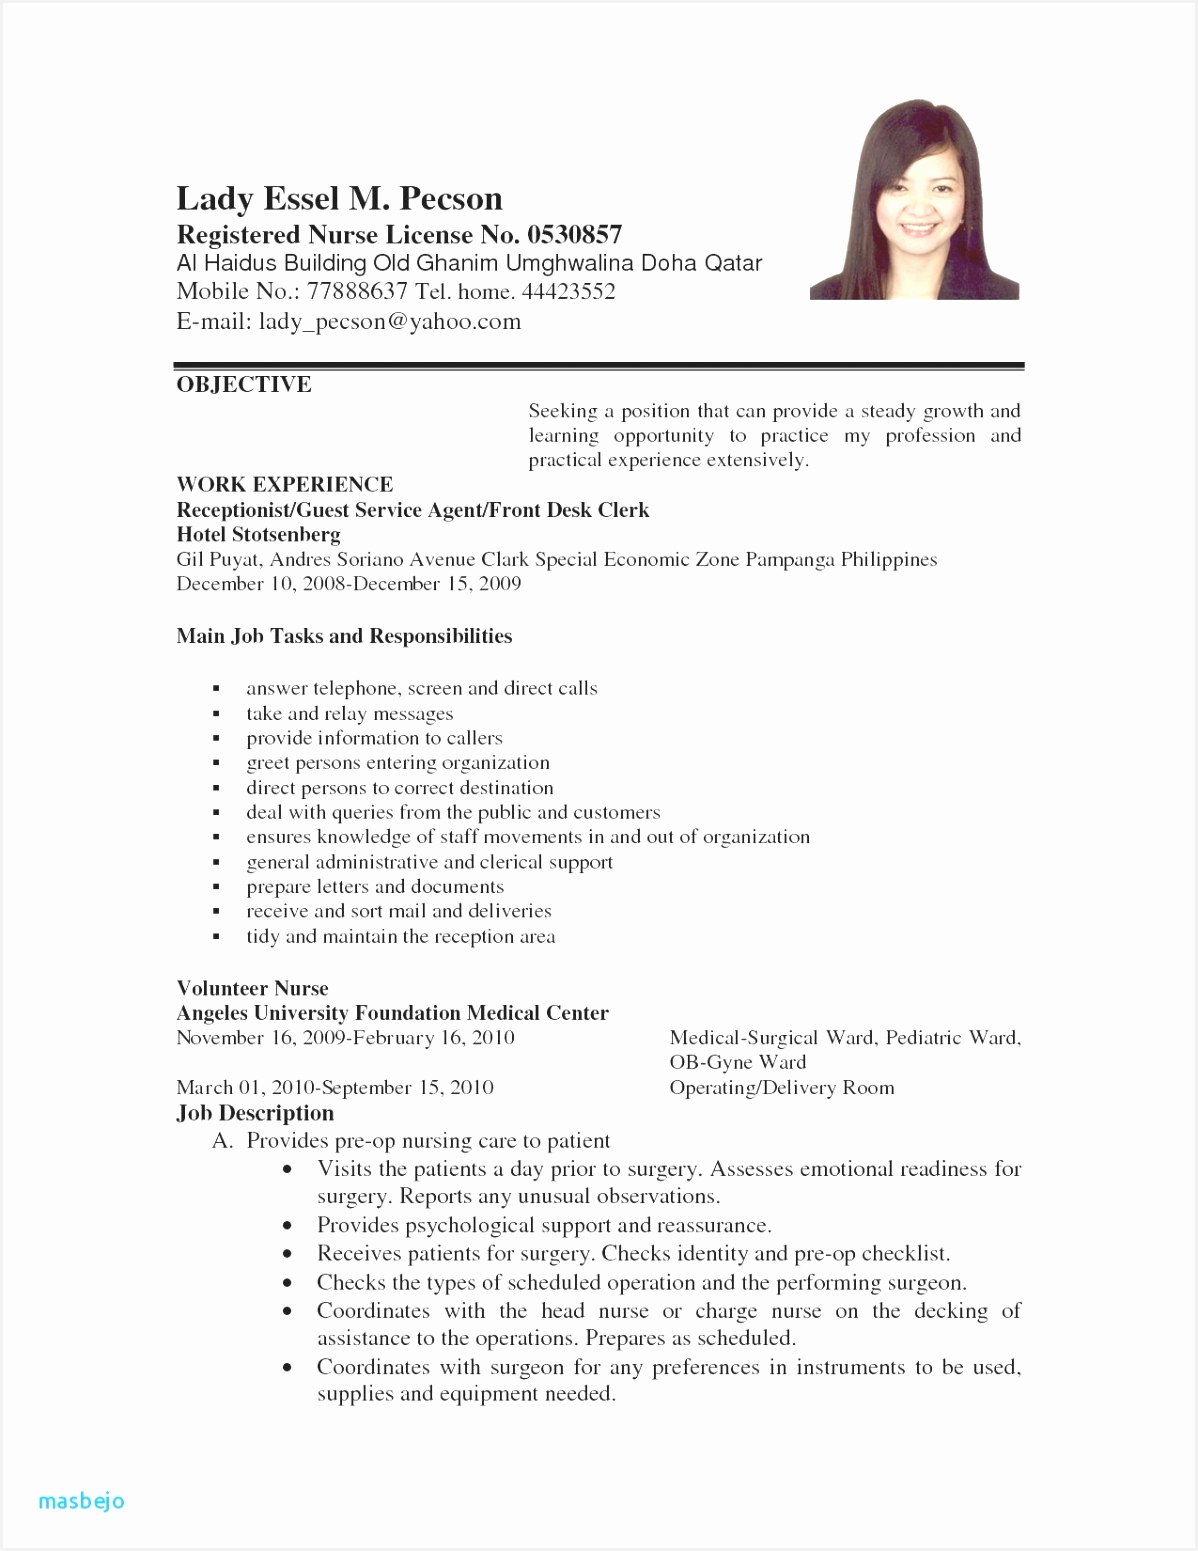 Cover Letter for A Receptionist with No Experience Cna Resume Sample New Skills Lovely Bsw 0d Best format Template 15511198uIaIq